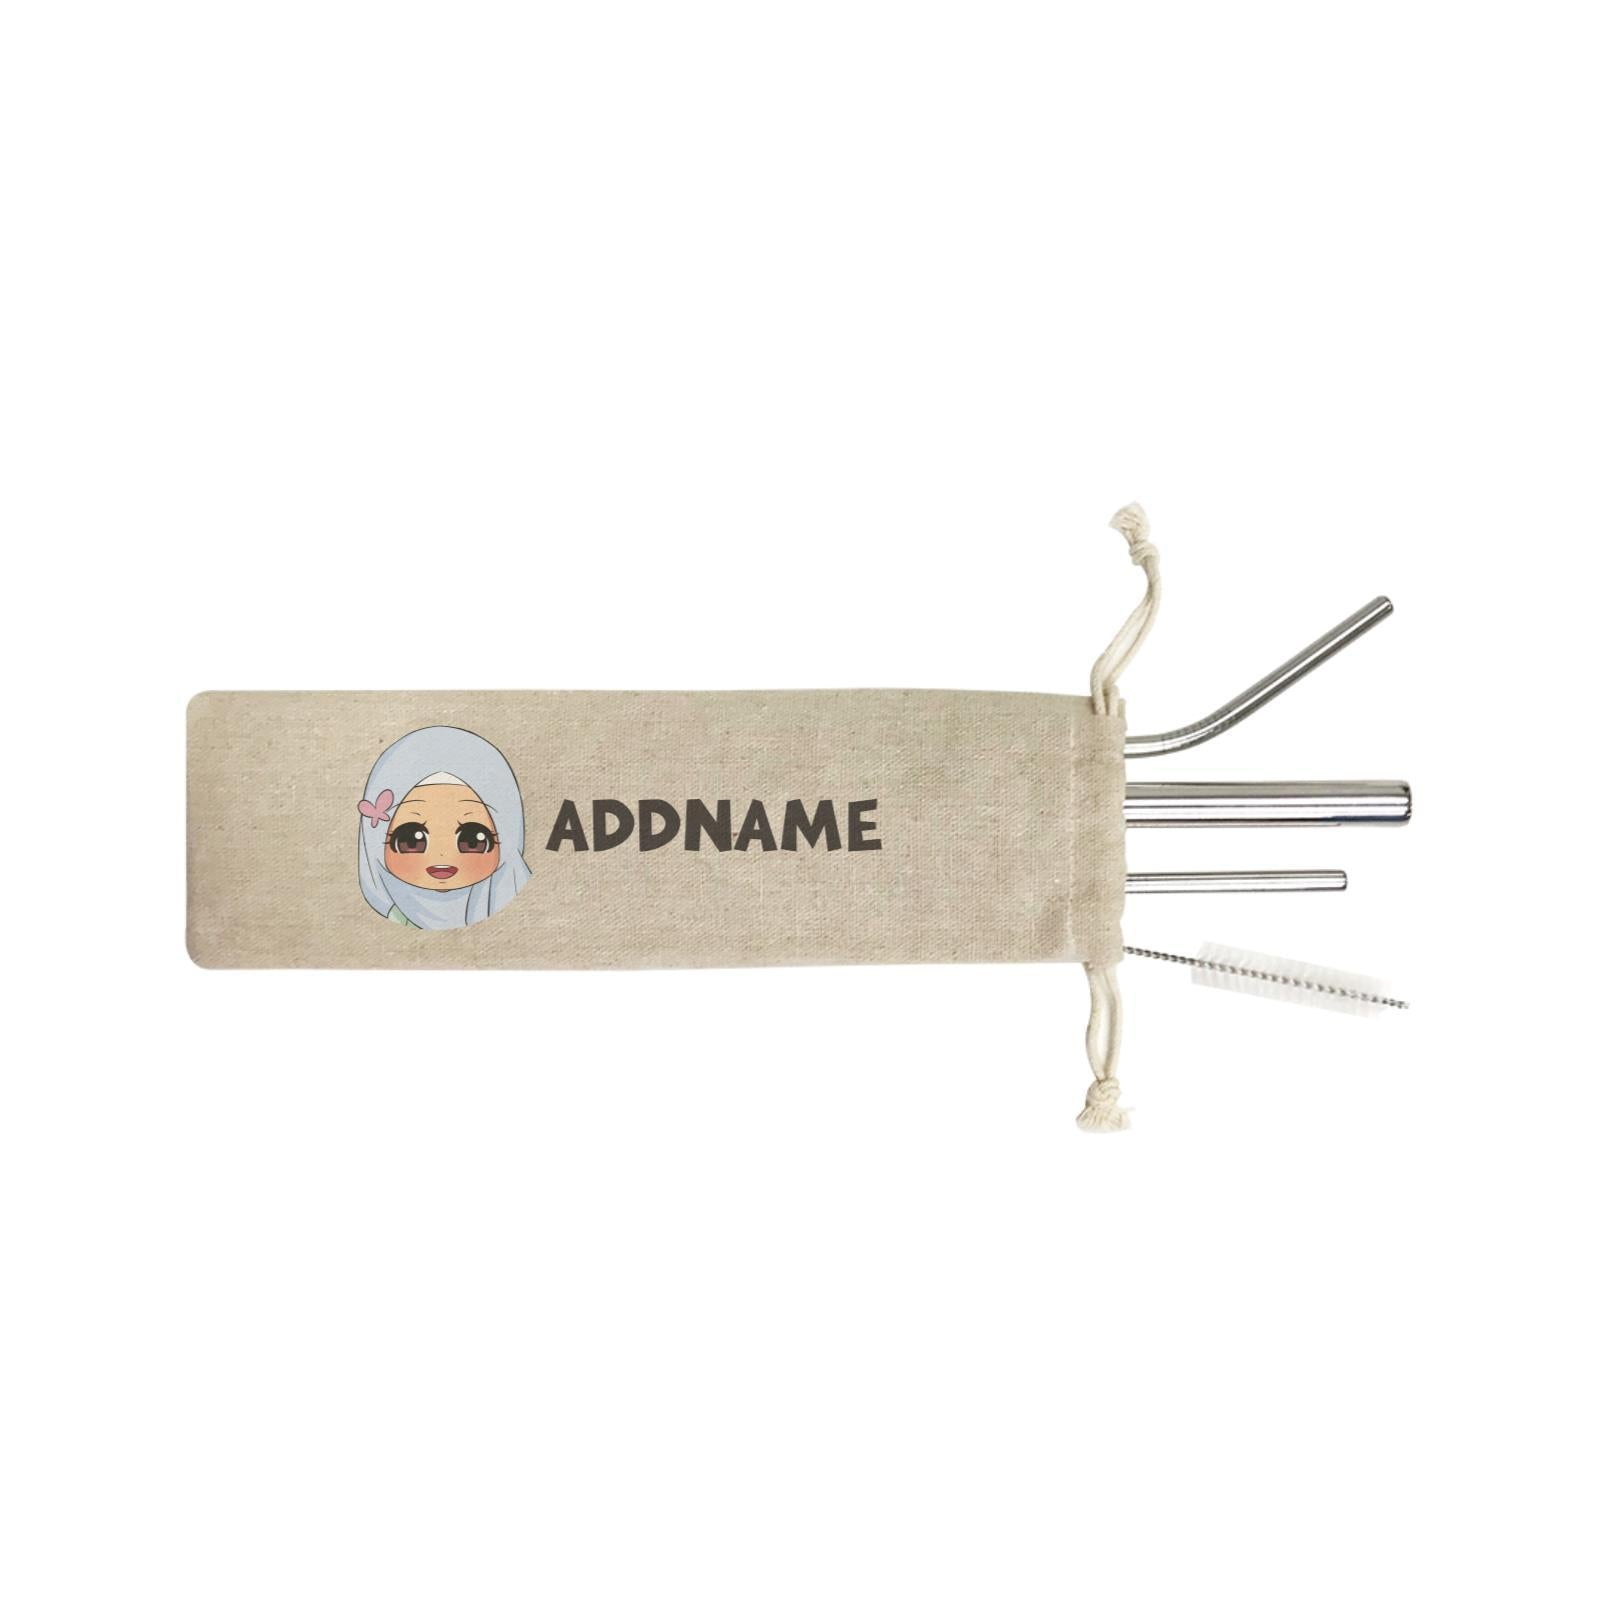 Children's Day Gift Series Little Malay Girl Addname SB 4-in-1 Stainless Steel Straw Set In a Satchel